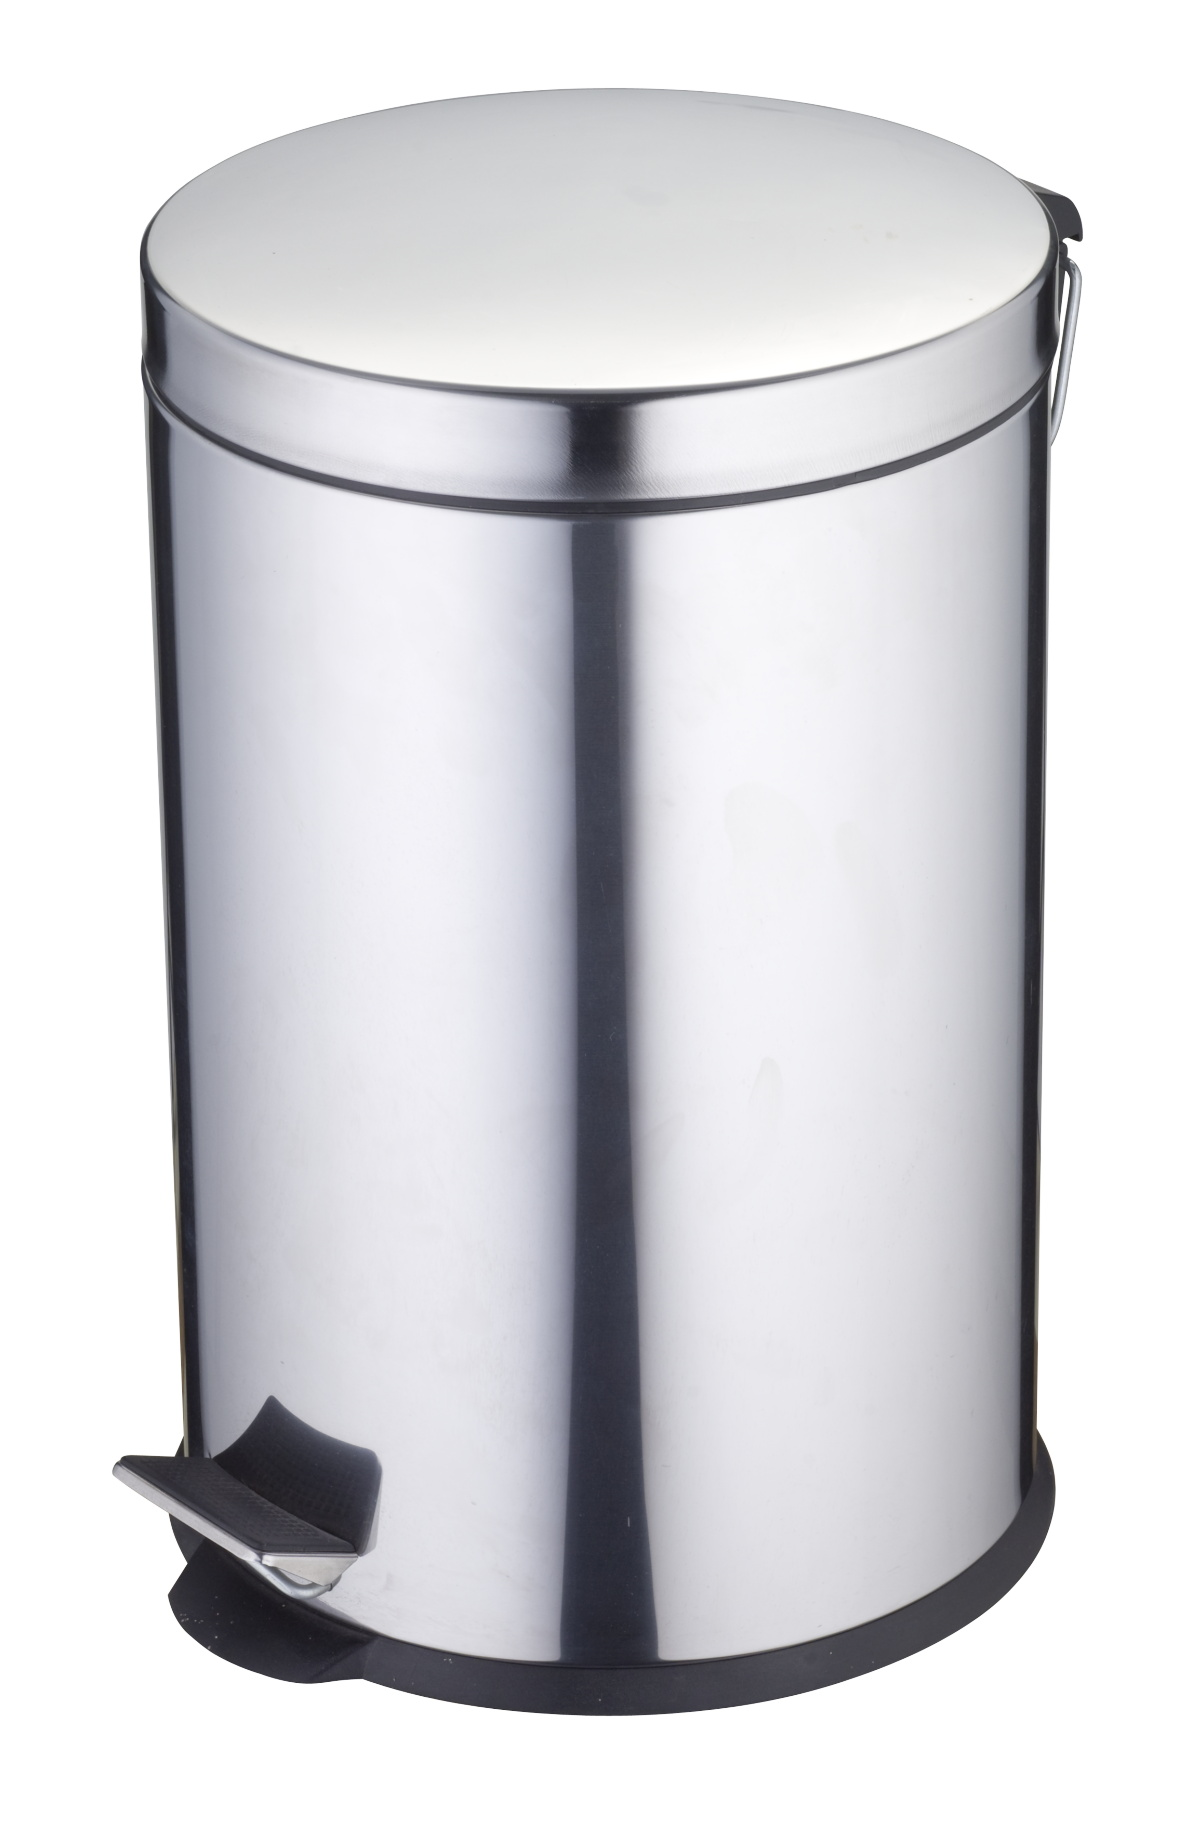 Stainless Steel Pedal/Step Trash Bin/Trash Can/Garbage Can/Garbage Bin(with PP inner bin)